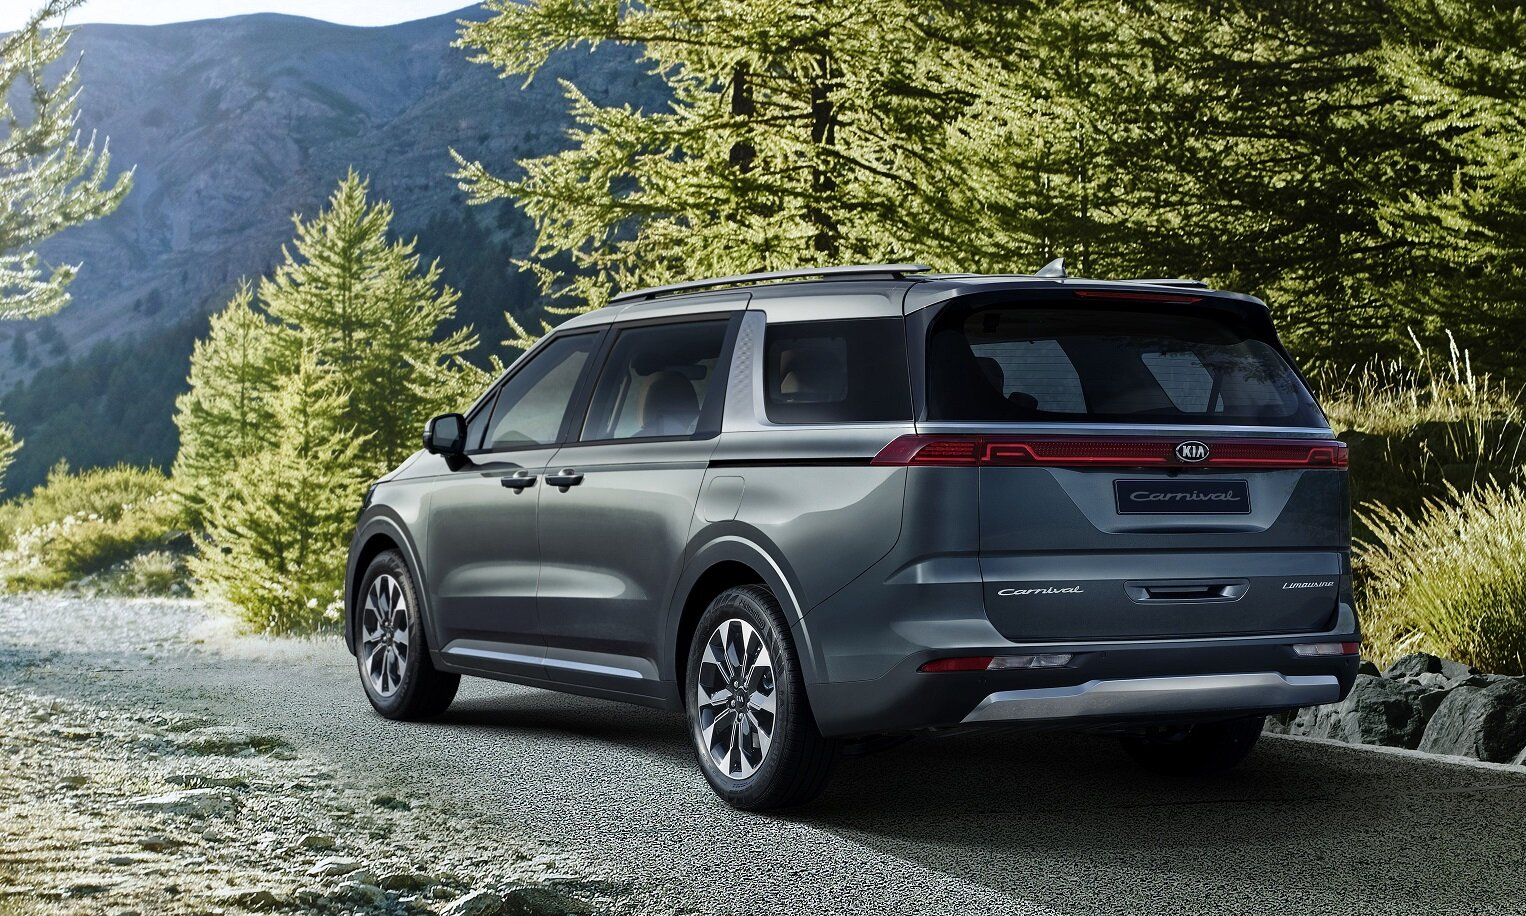 2021 Kia Carnival Australian details and specifications ...